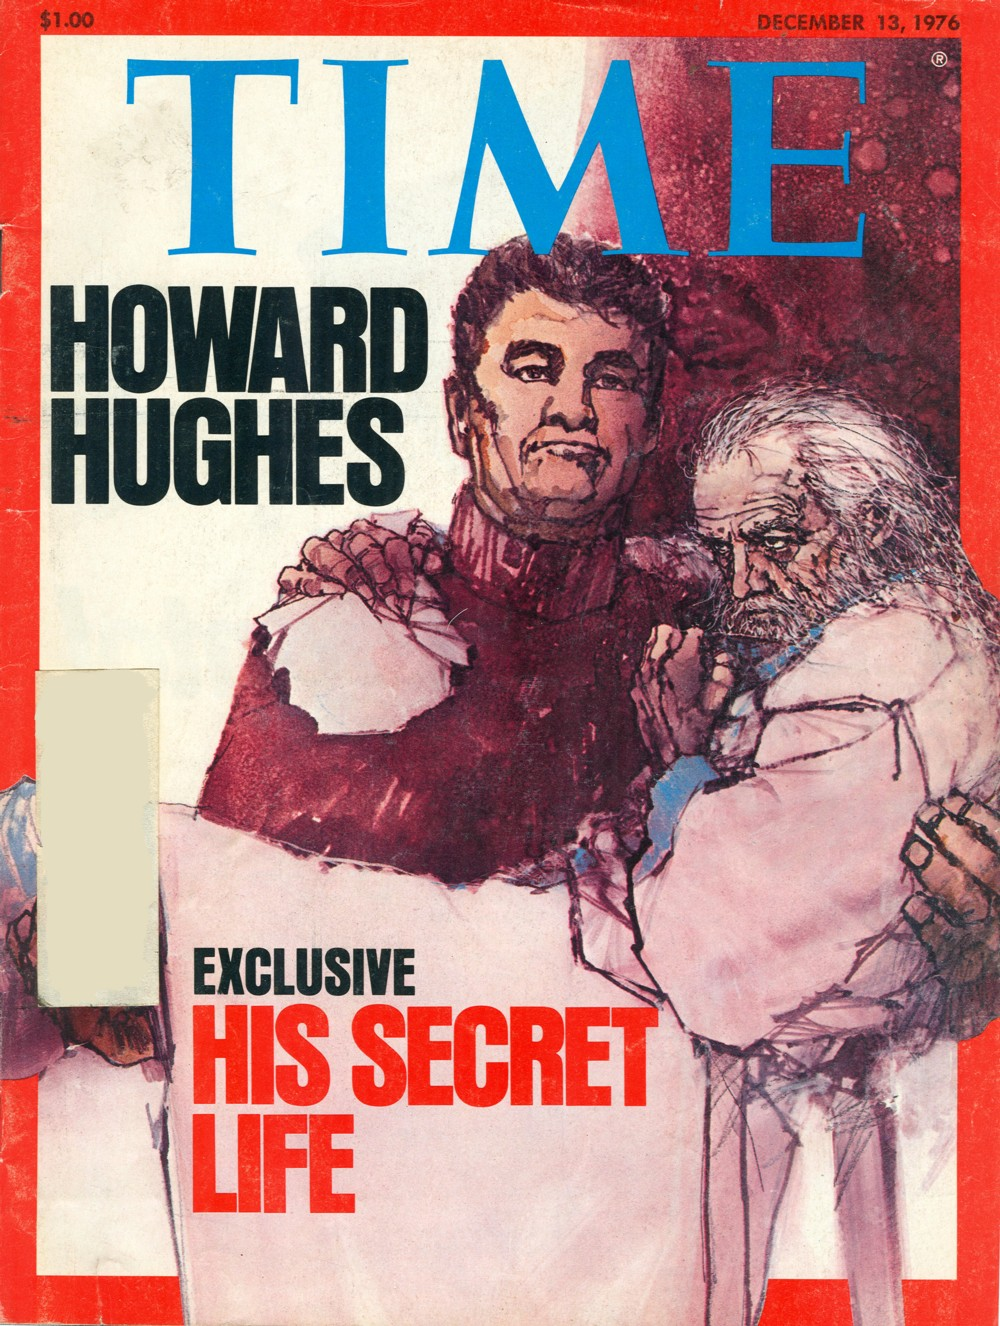 Howard hughes last pictures